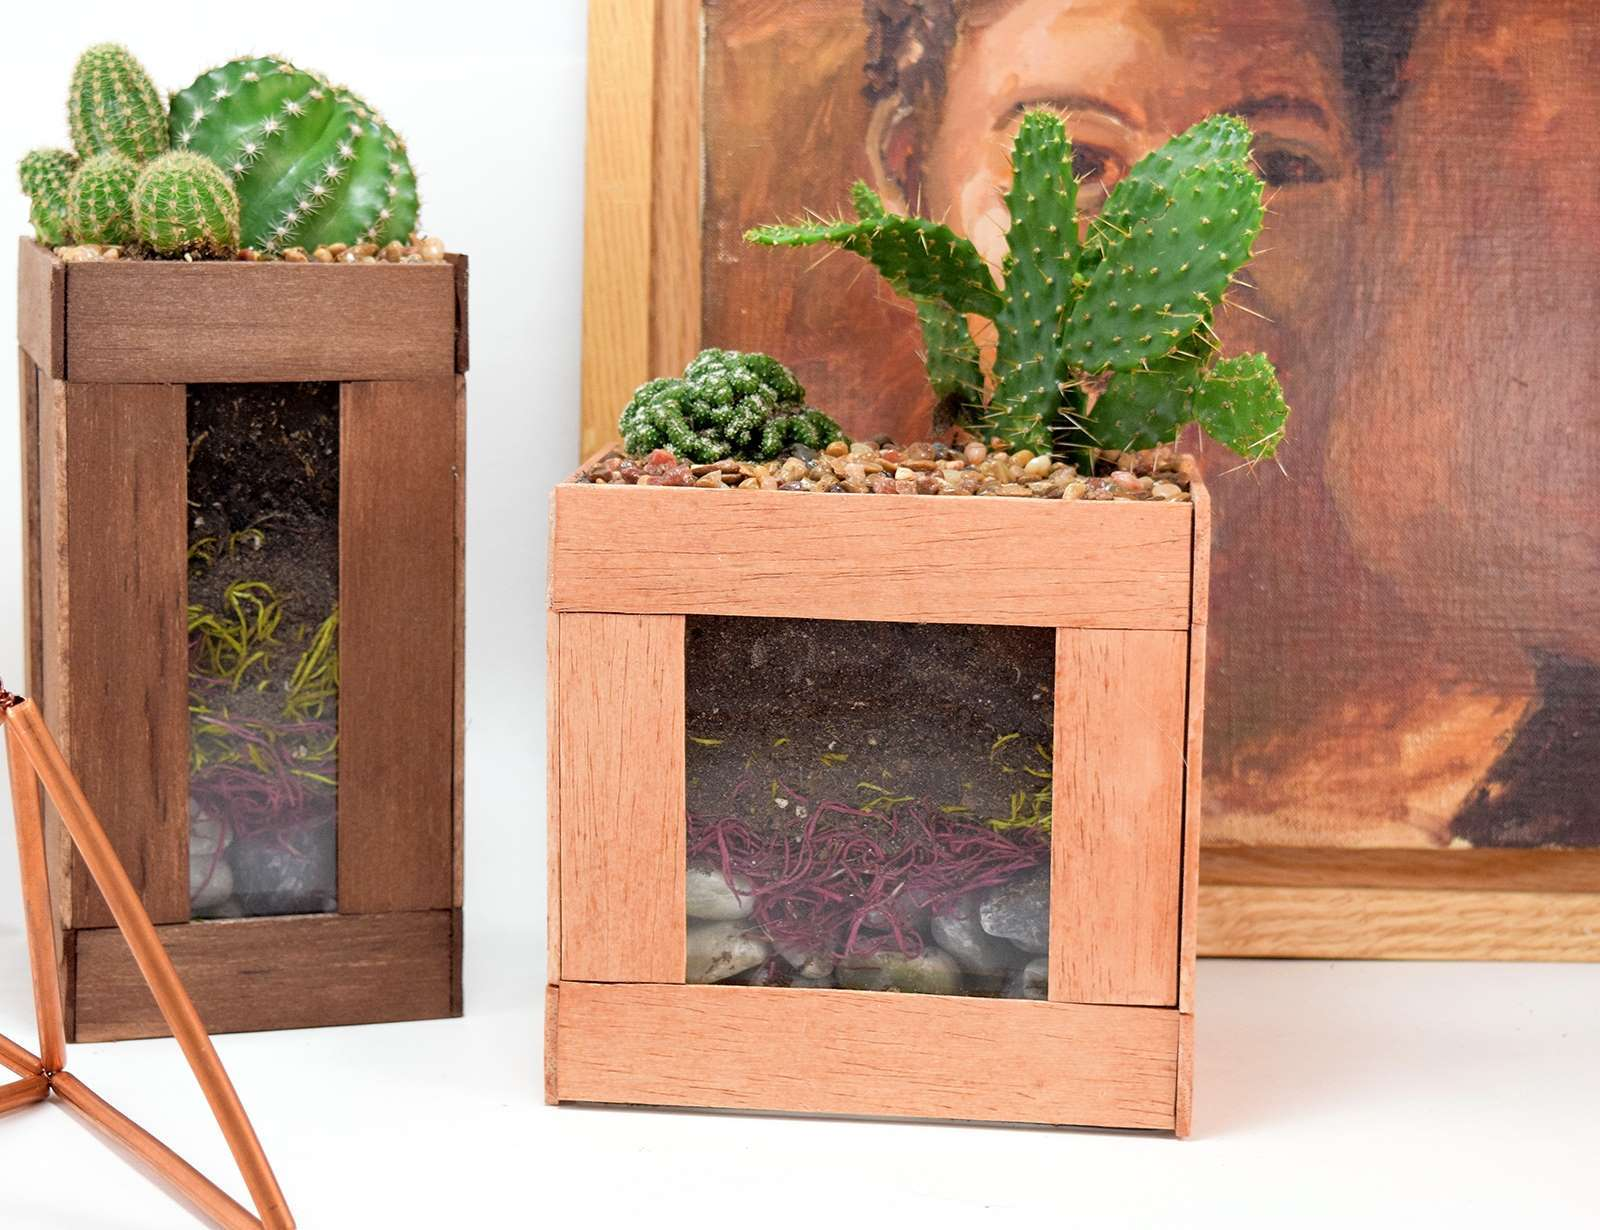 Picture of How to Glue Wood to Glass - Simple Cactus Terarriums